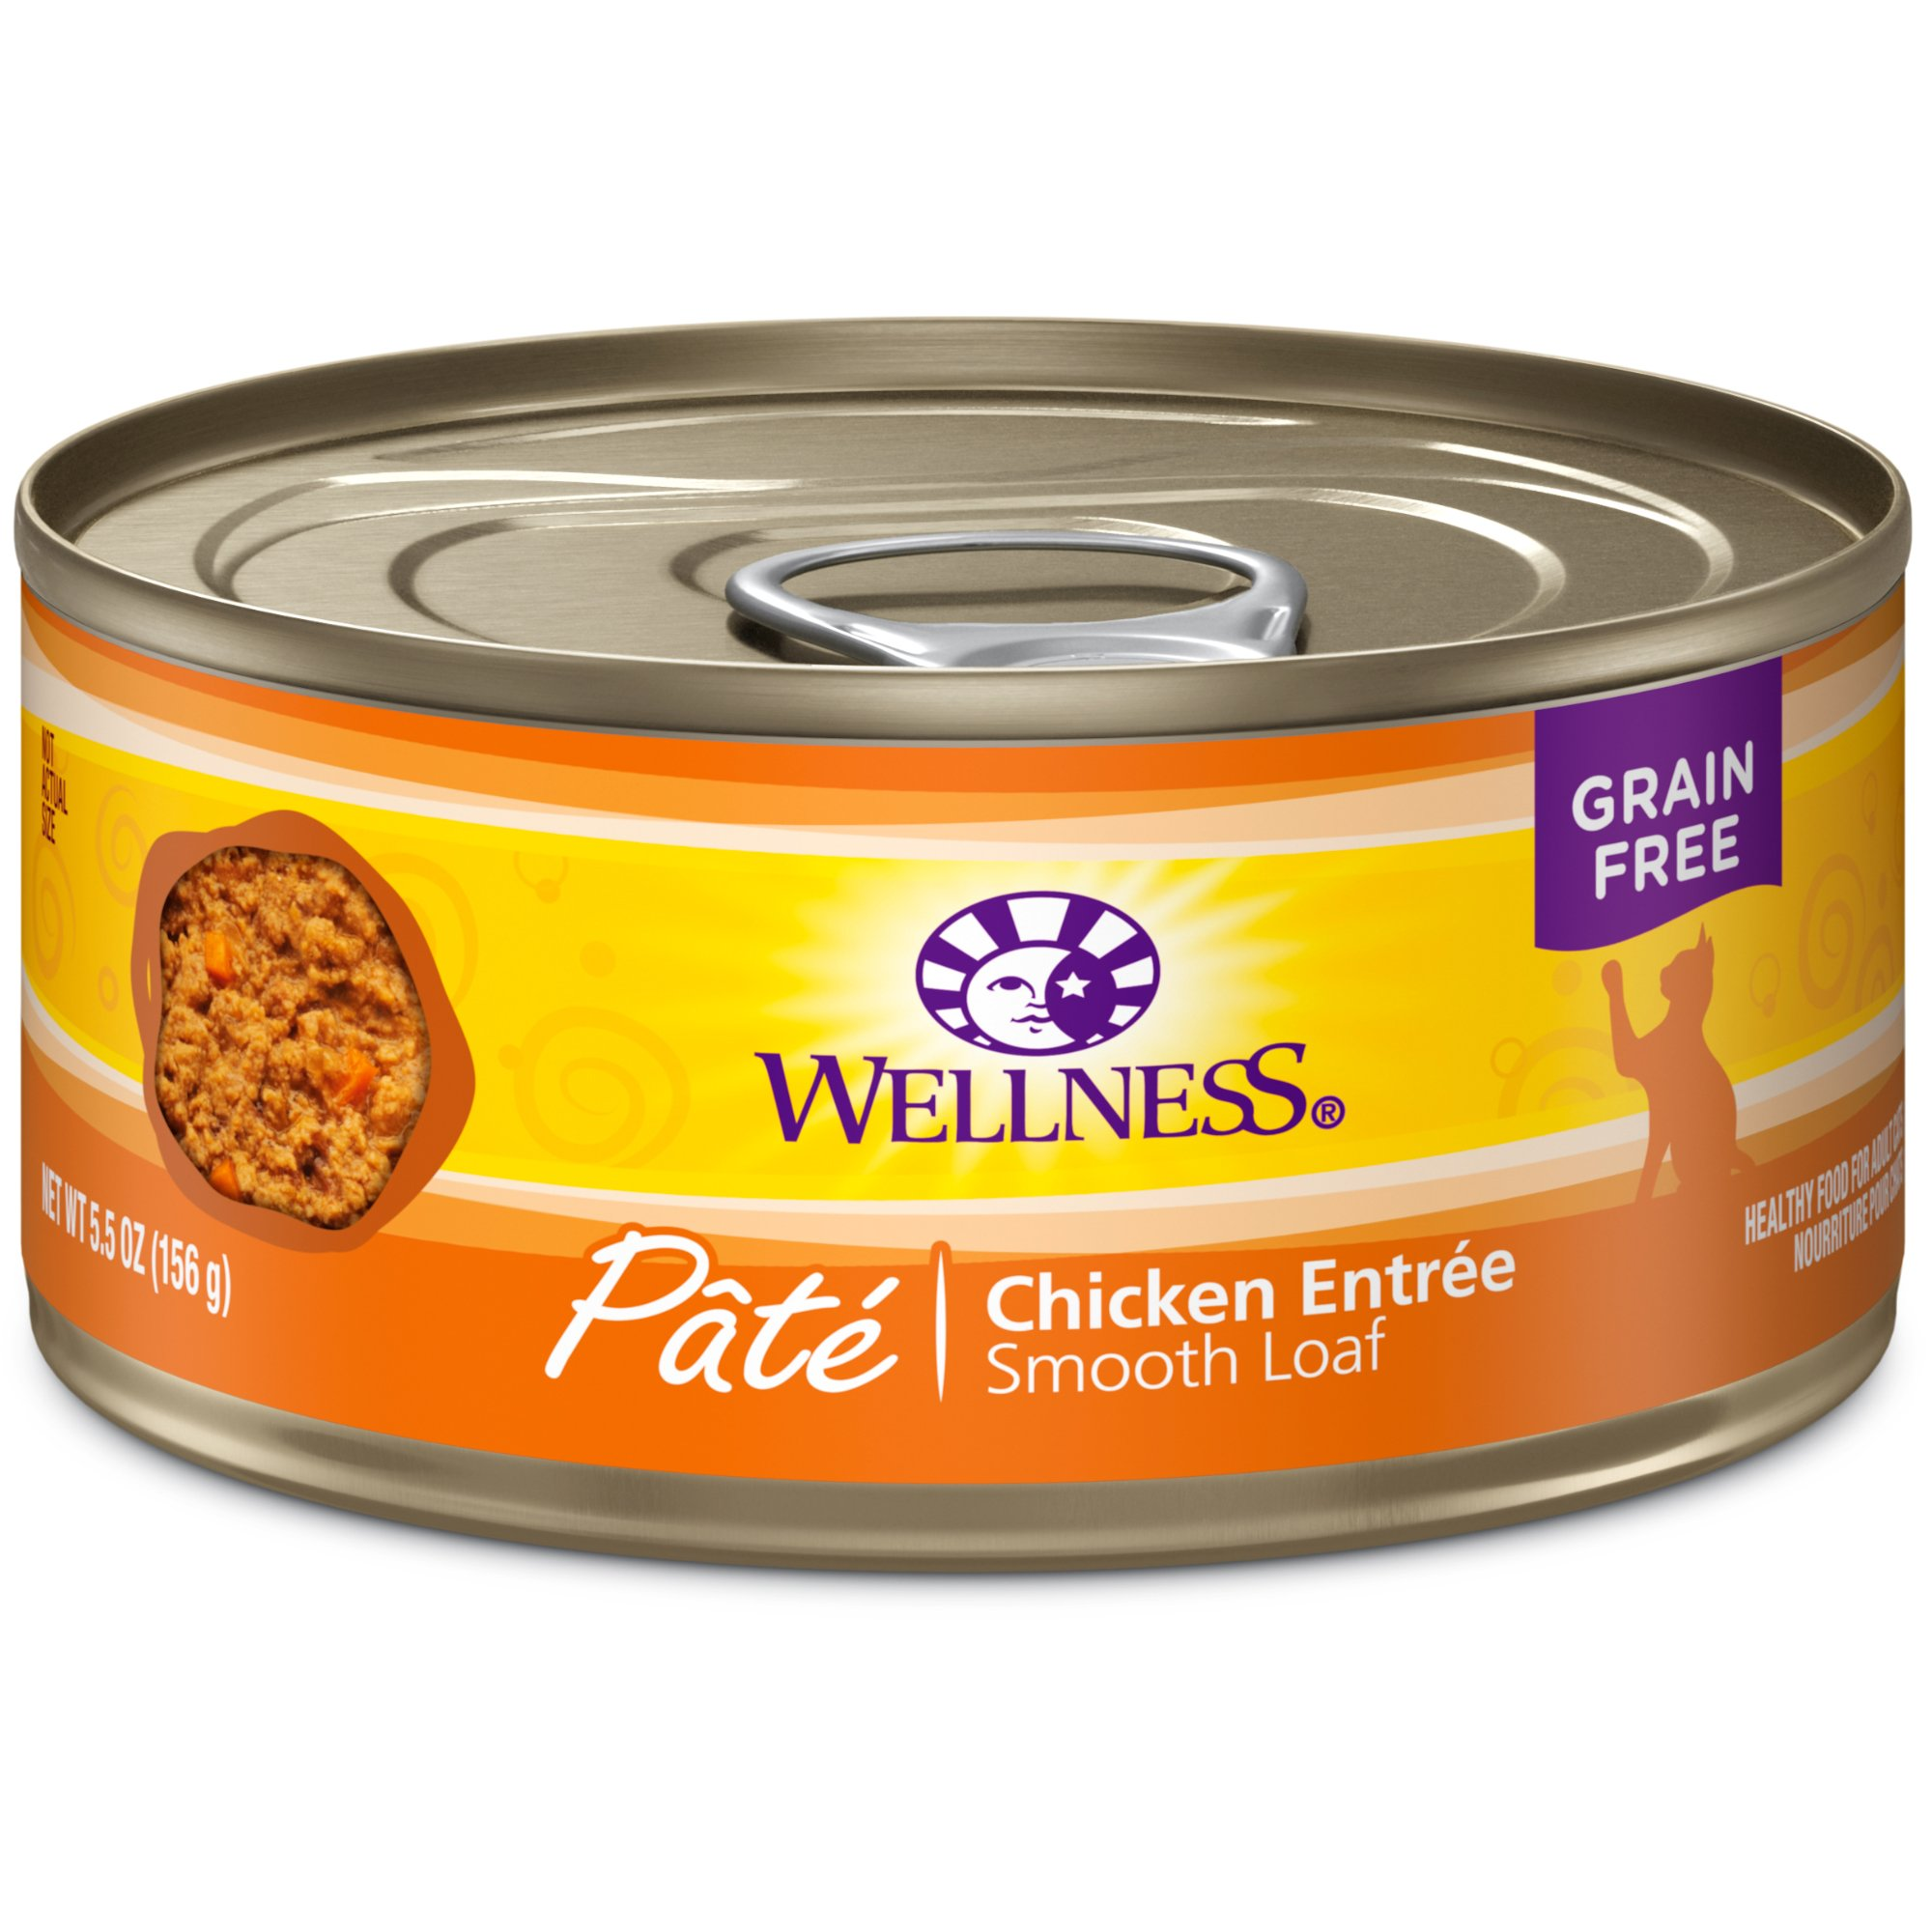 Wellness Natural Grain Free Wet Canned Cat Food, Chicken Pate, 5.5-Ounce Can (Pack Of 24) by Wellness Natural Pet Food